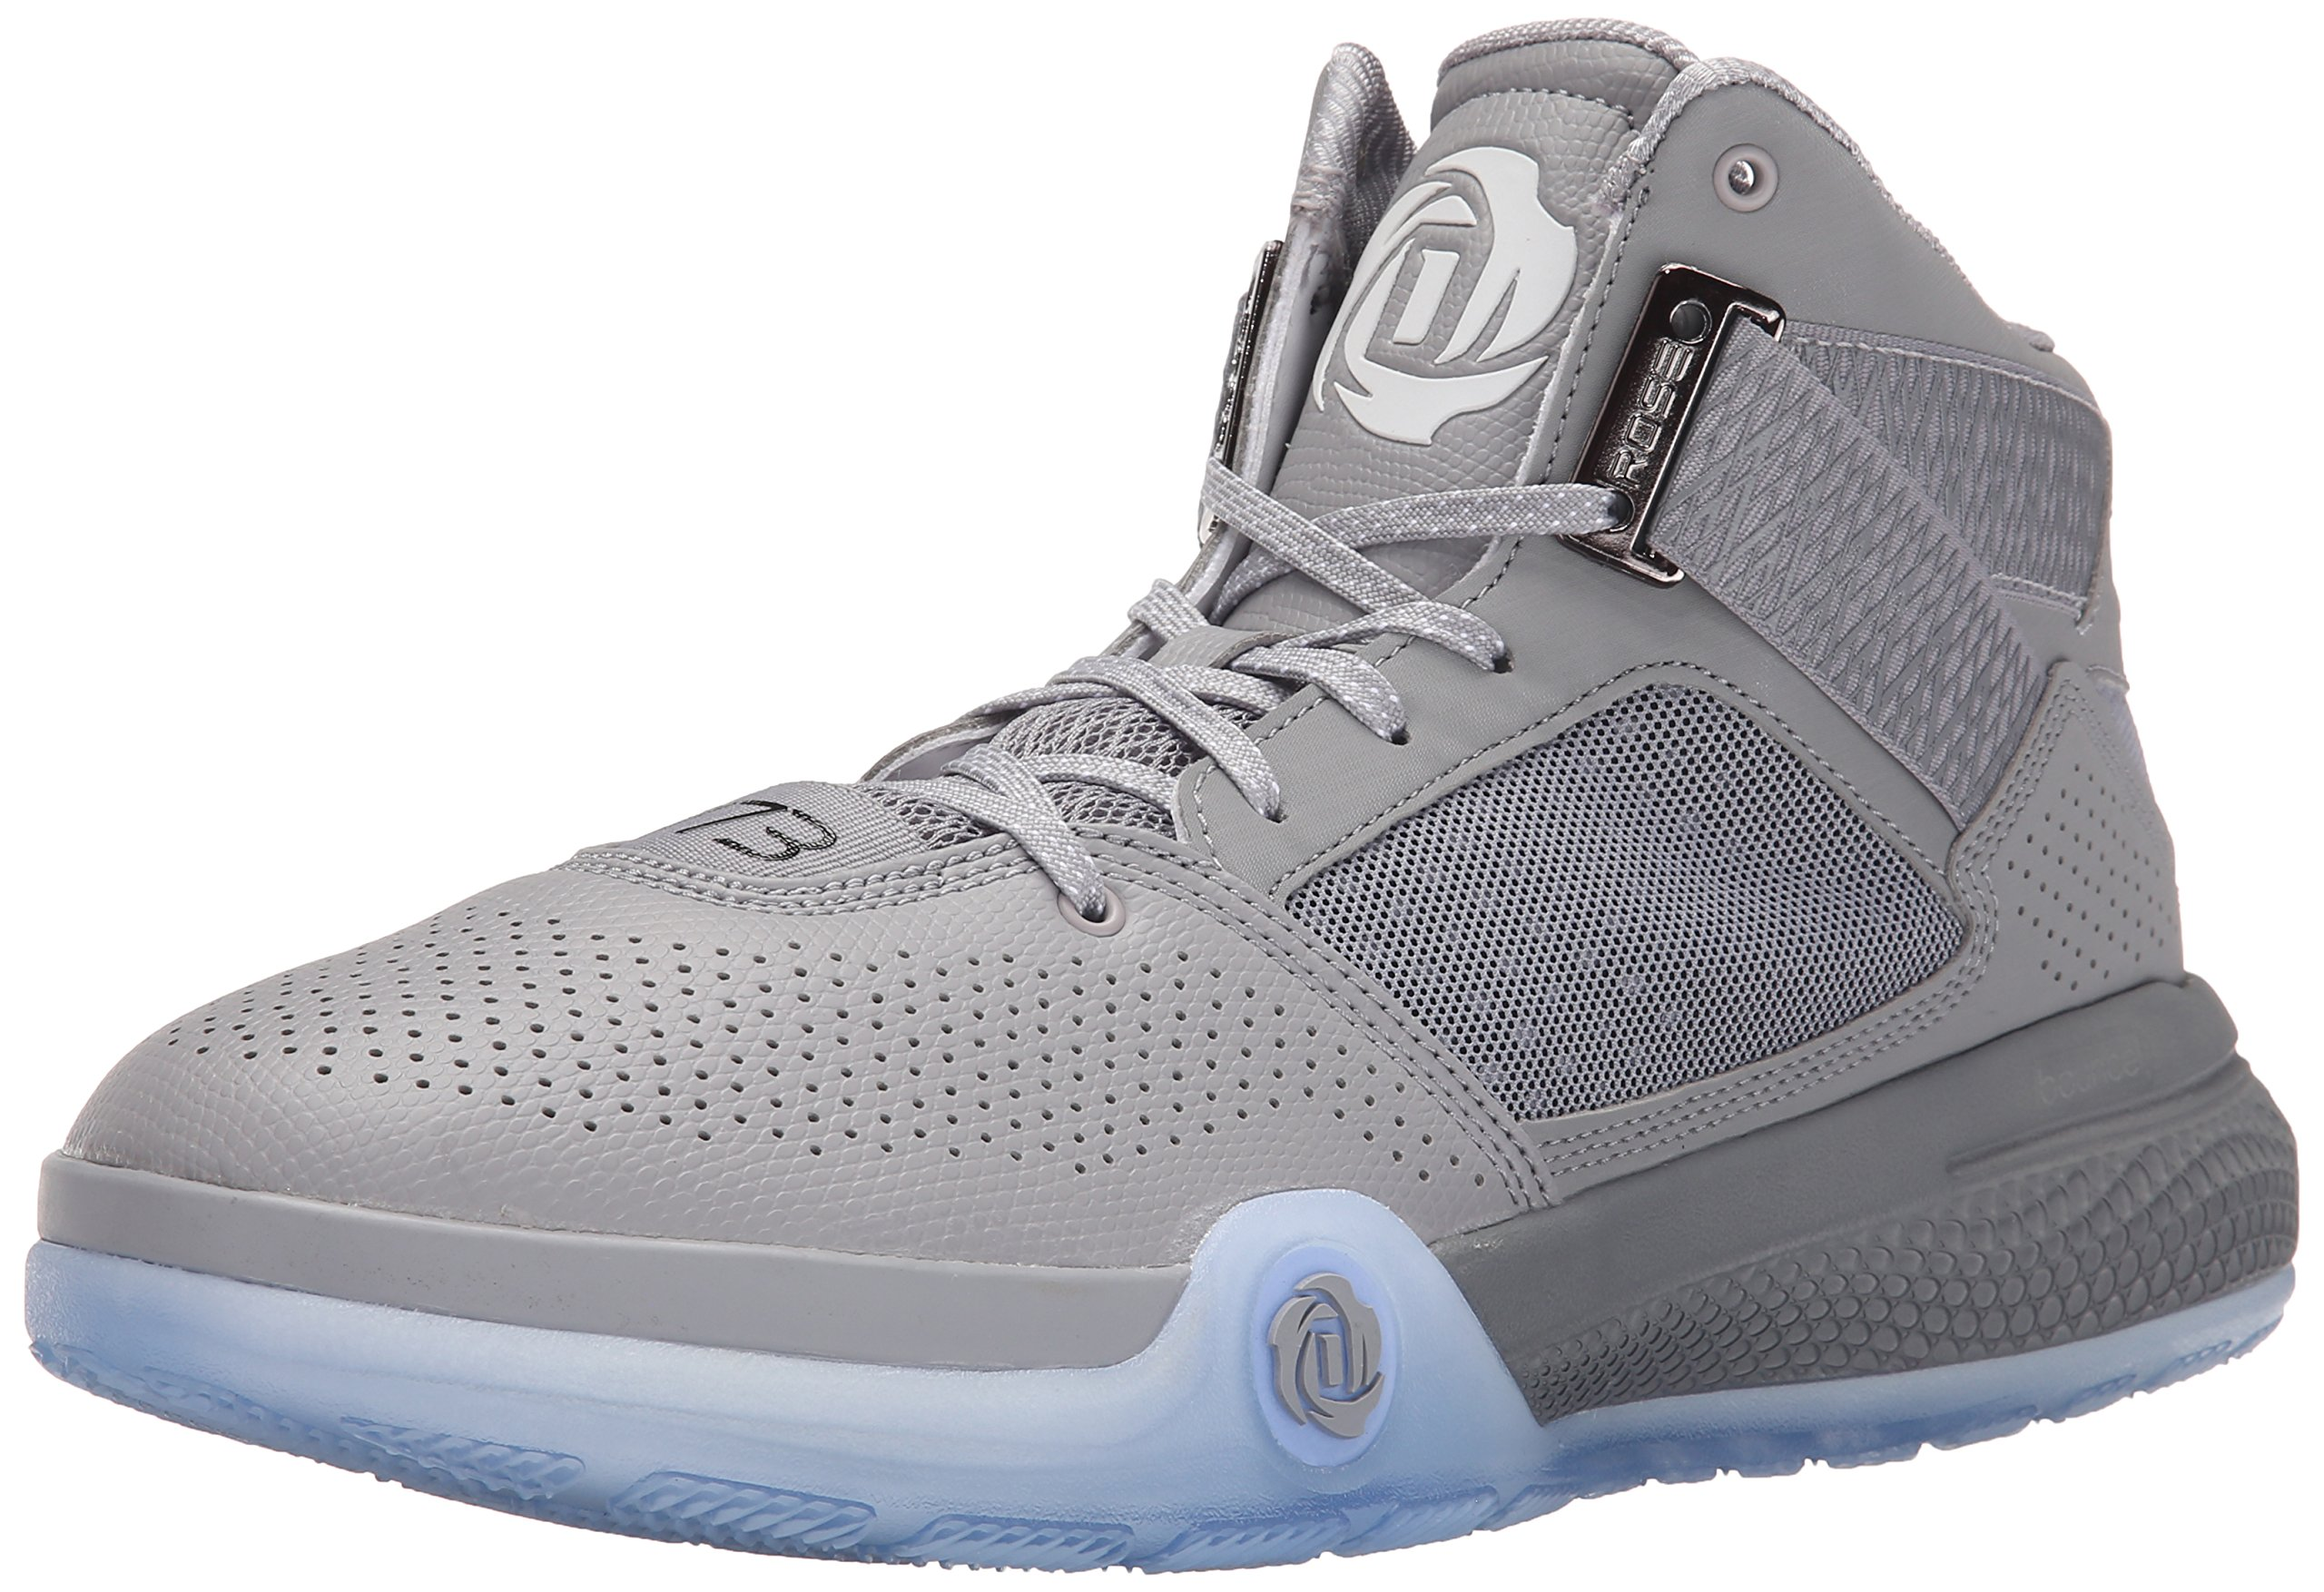 ed9a7737e58d Galleon - Adidas Performance Men s D Rose 773 IV Basketball Shoe ...